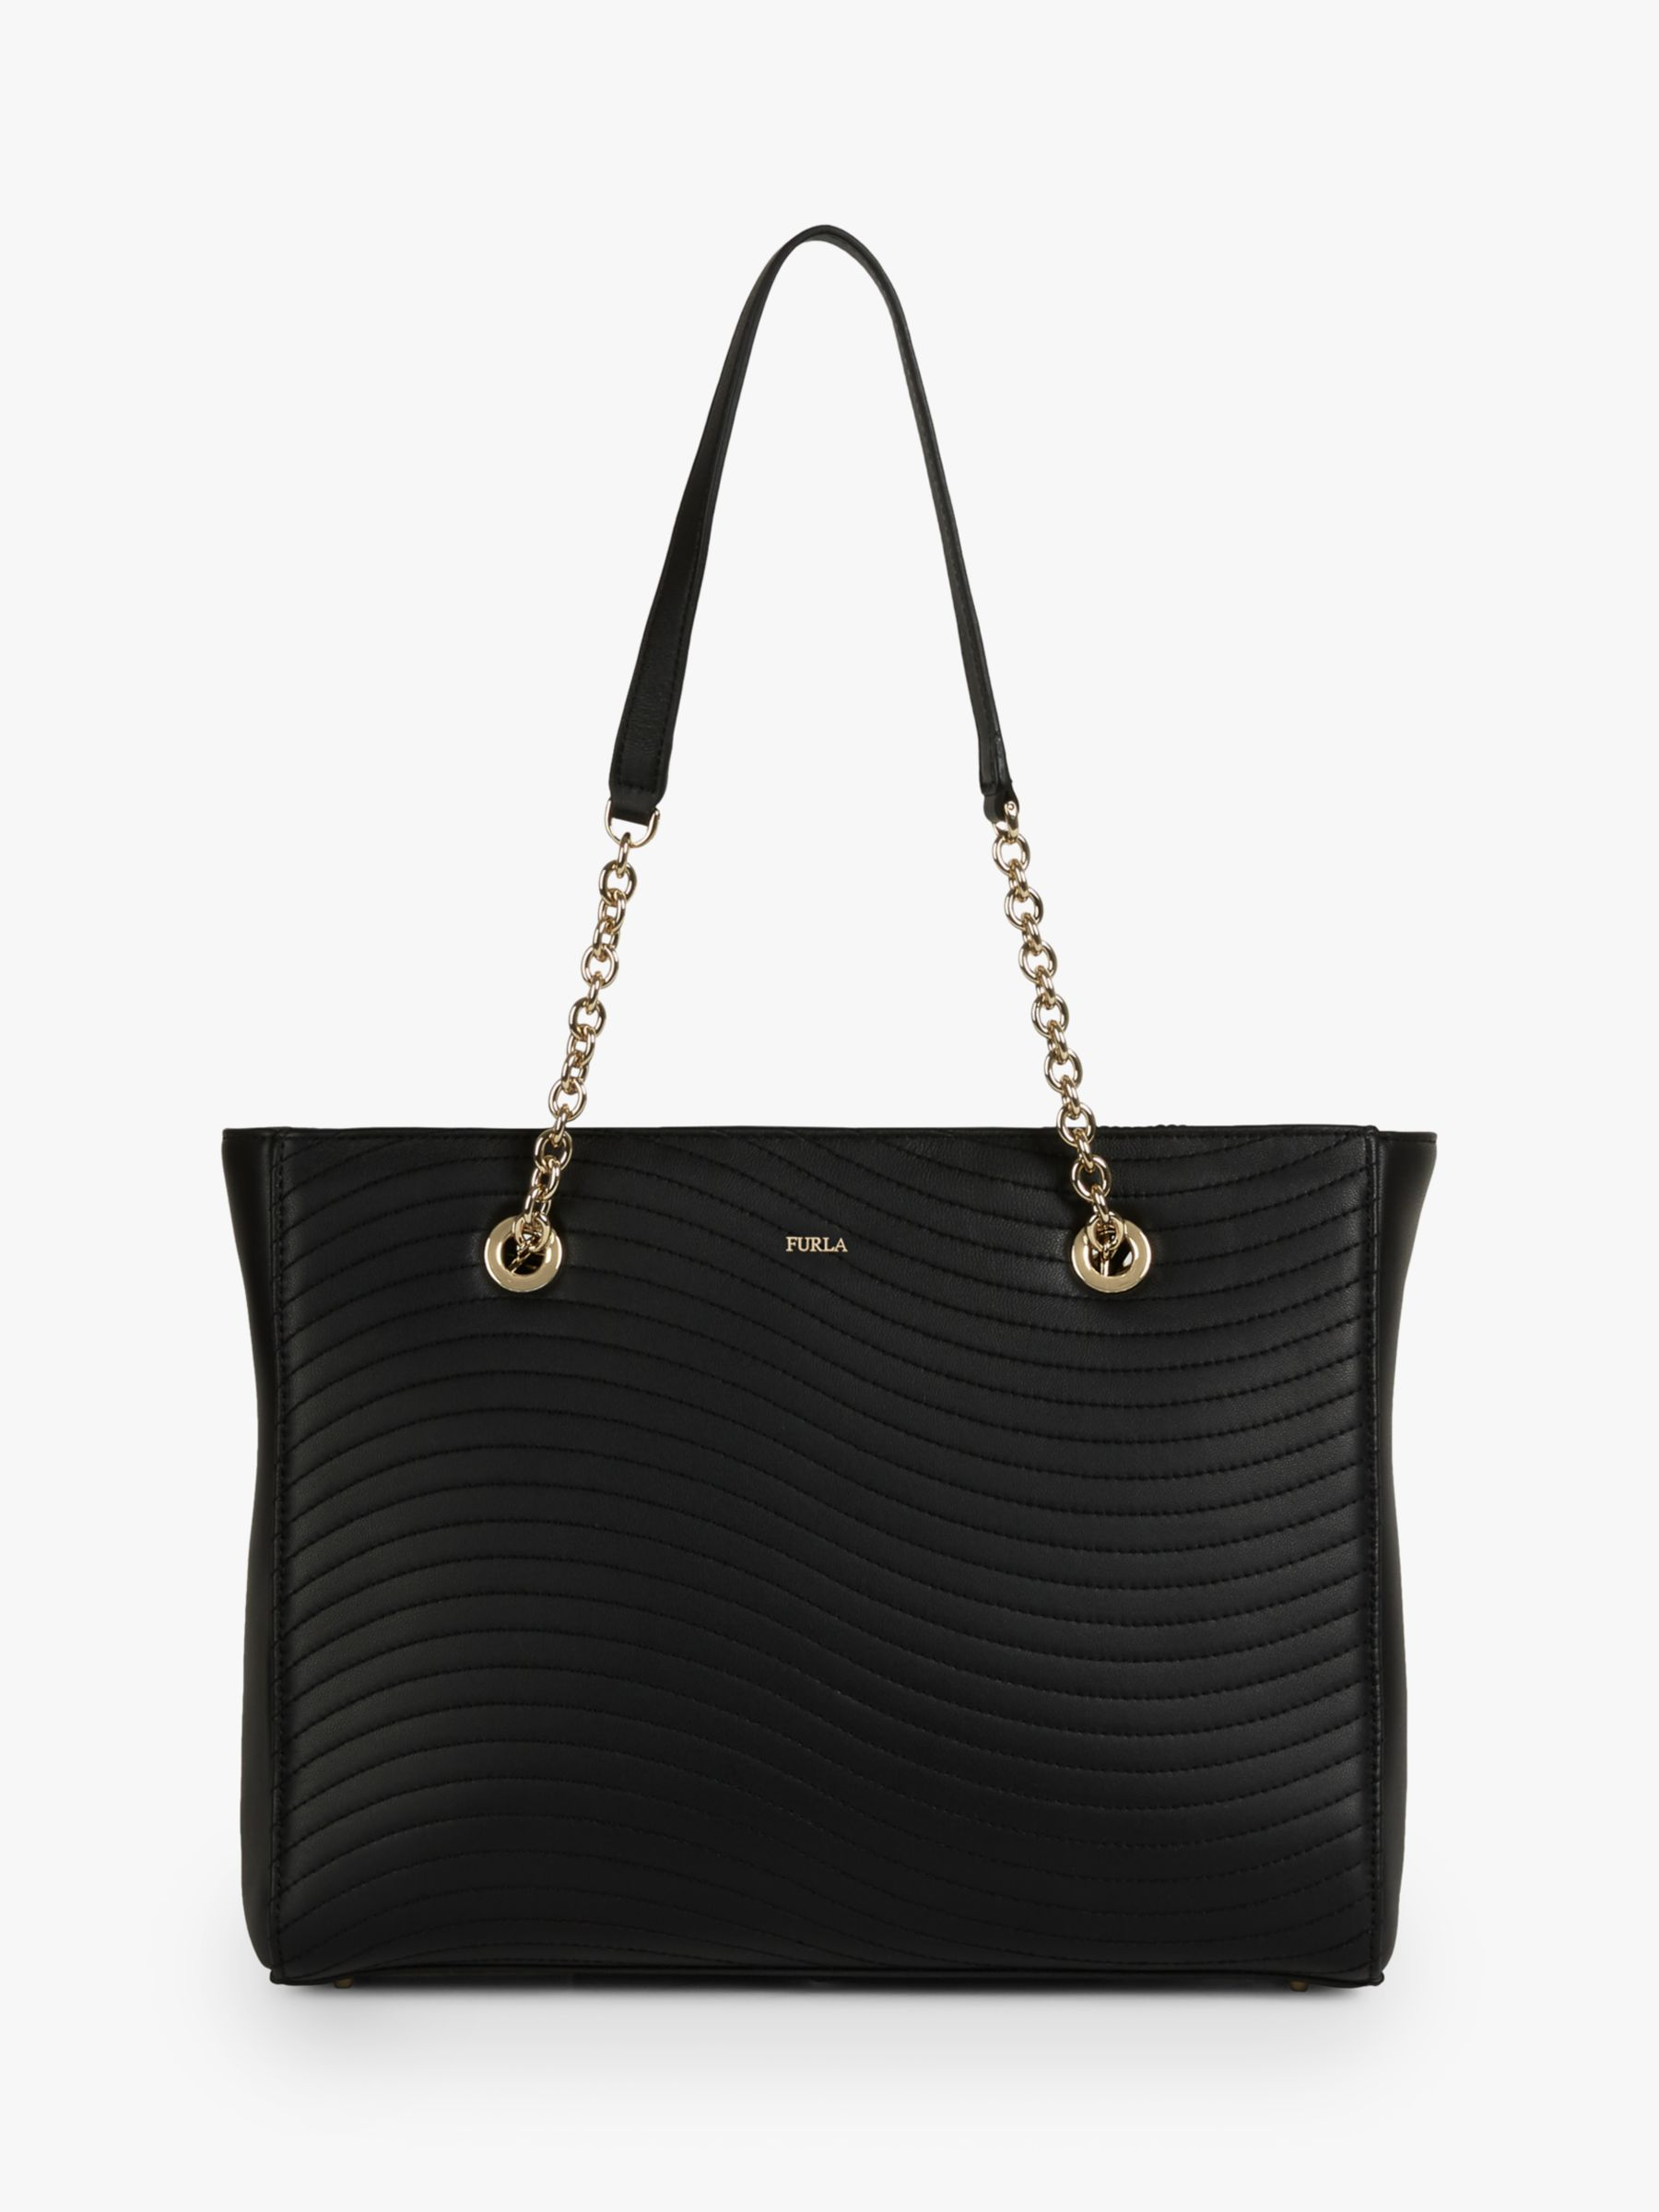 Furla Furla Swing Leather Tote Bag, Nero